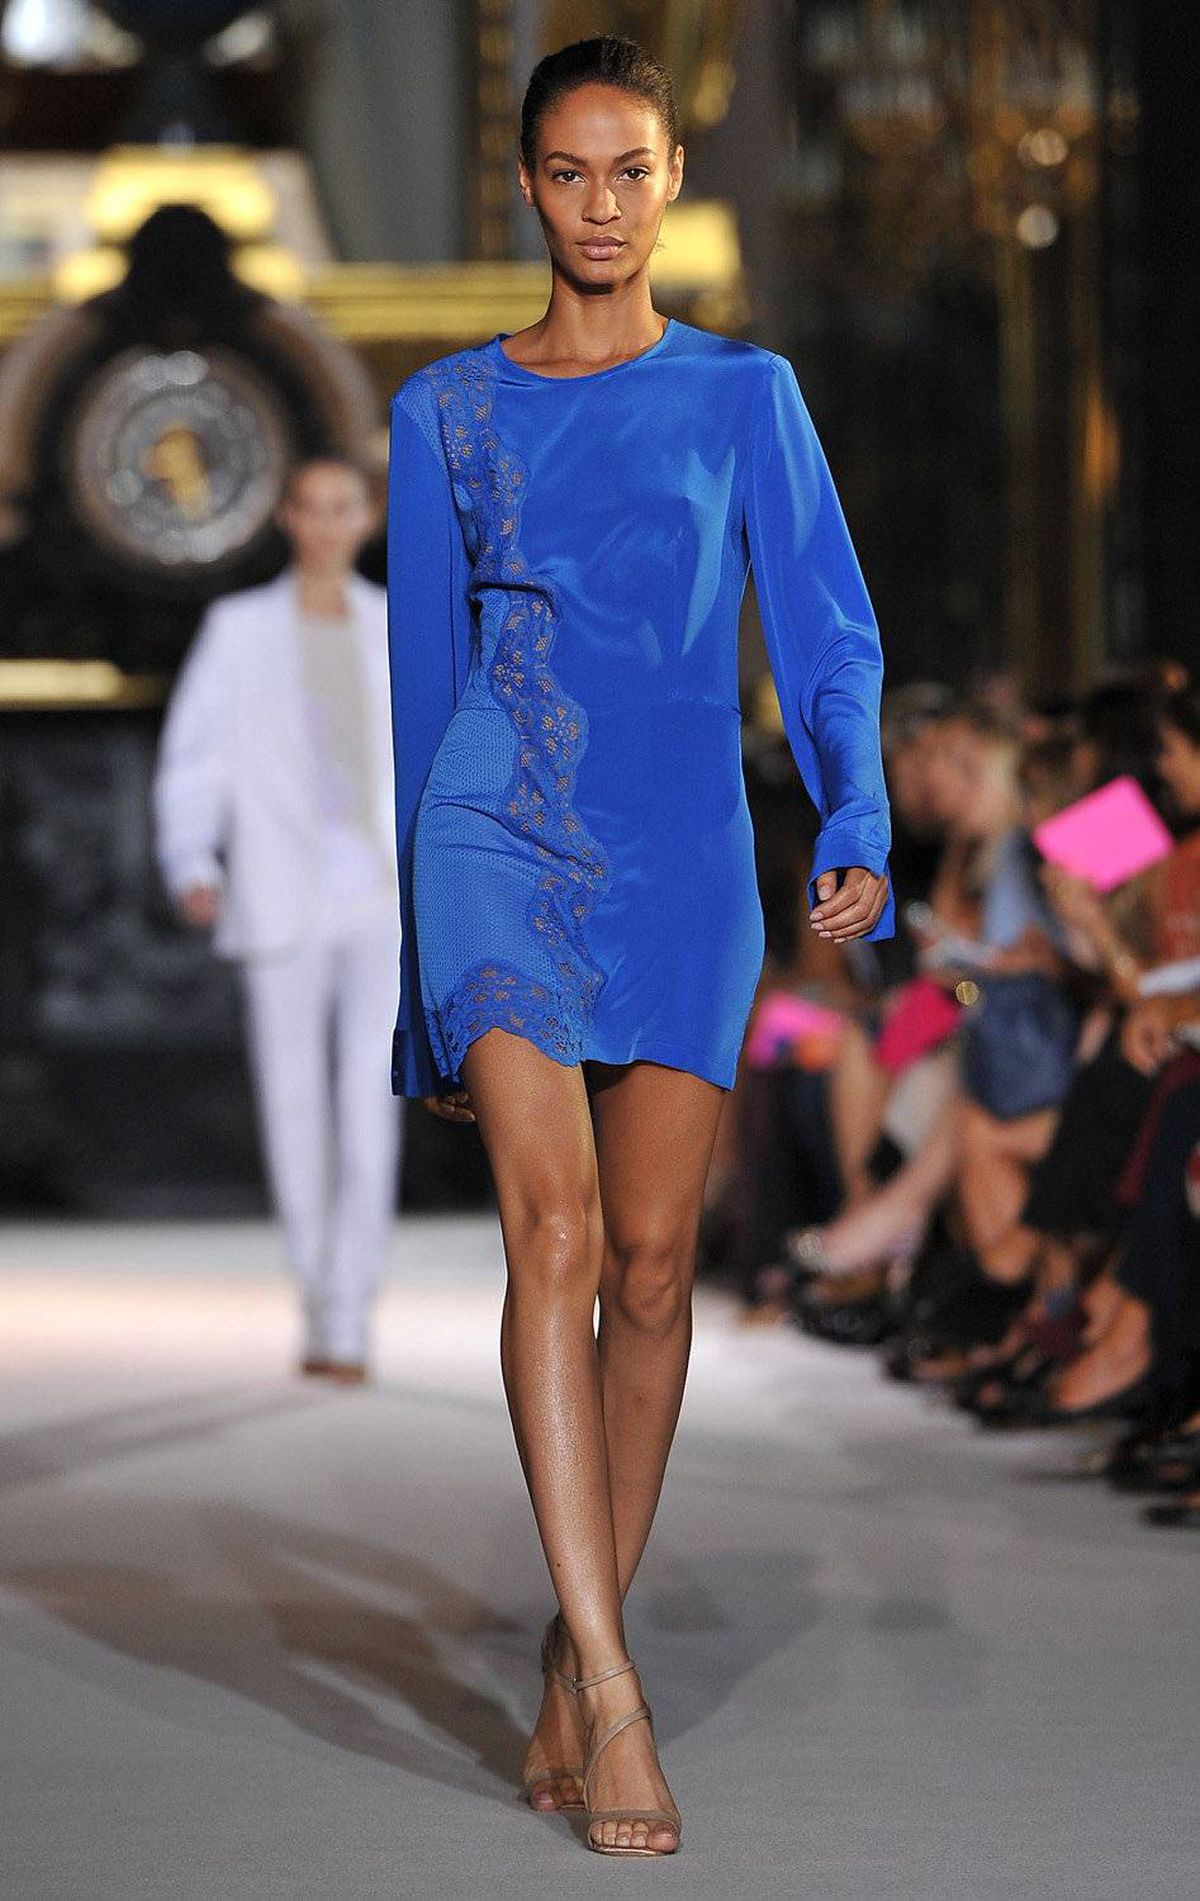 A model walks the runway during the Stella McCartney ready-to-wear spring/summer 2012 show during Paris Fashion Week on October 3, 2011 in Paris.